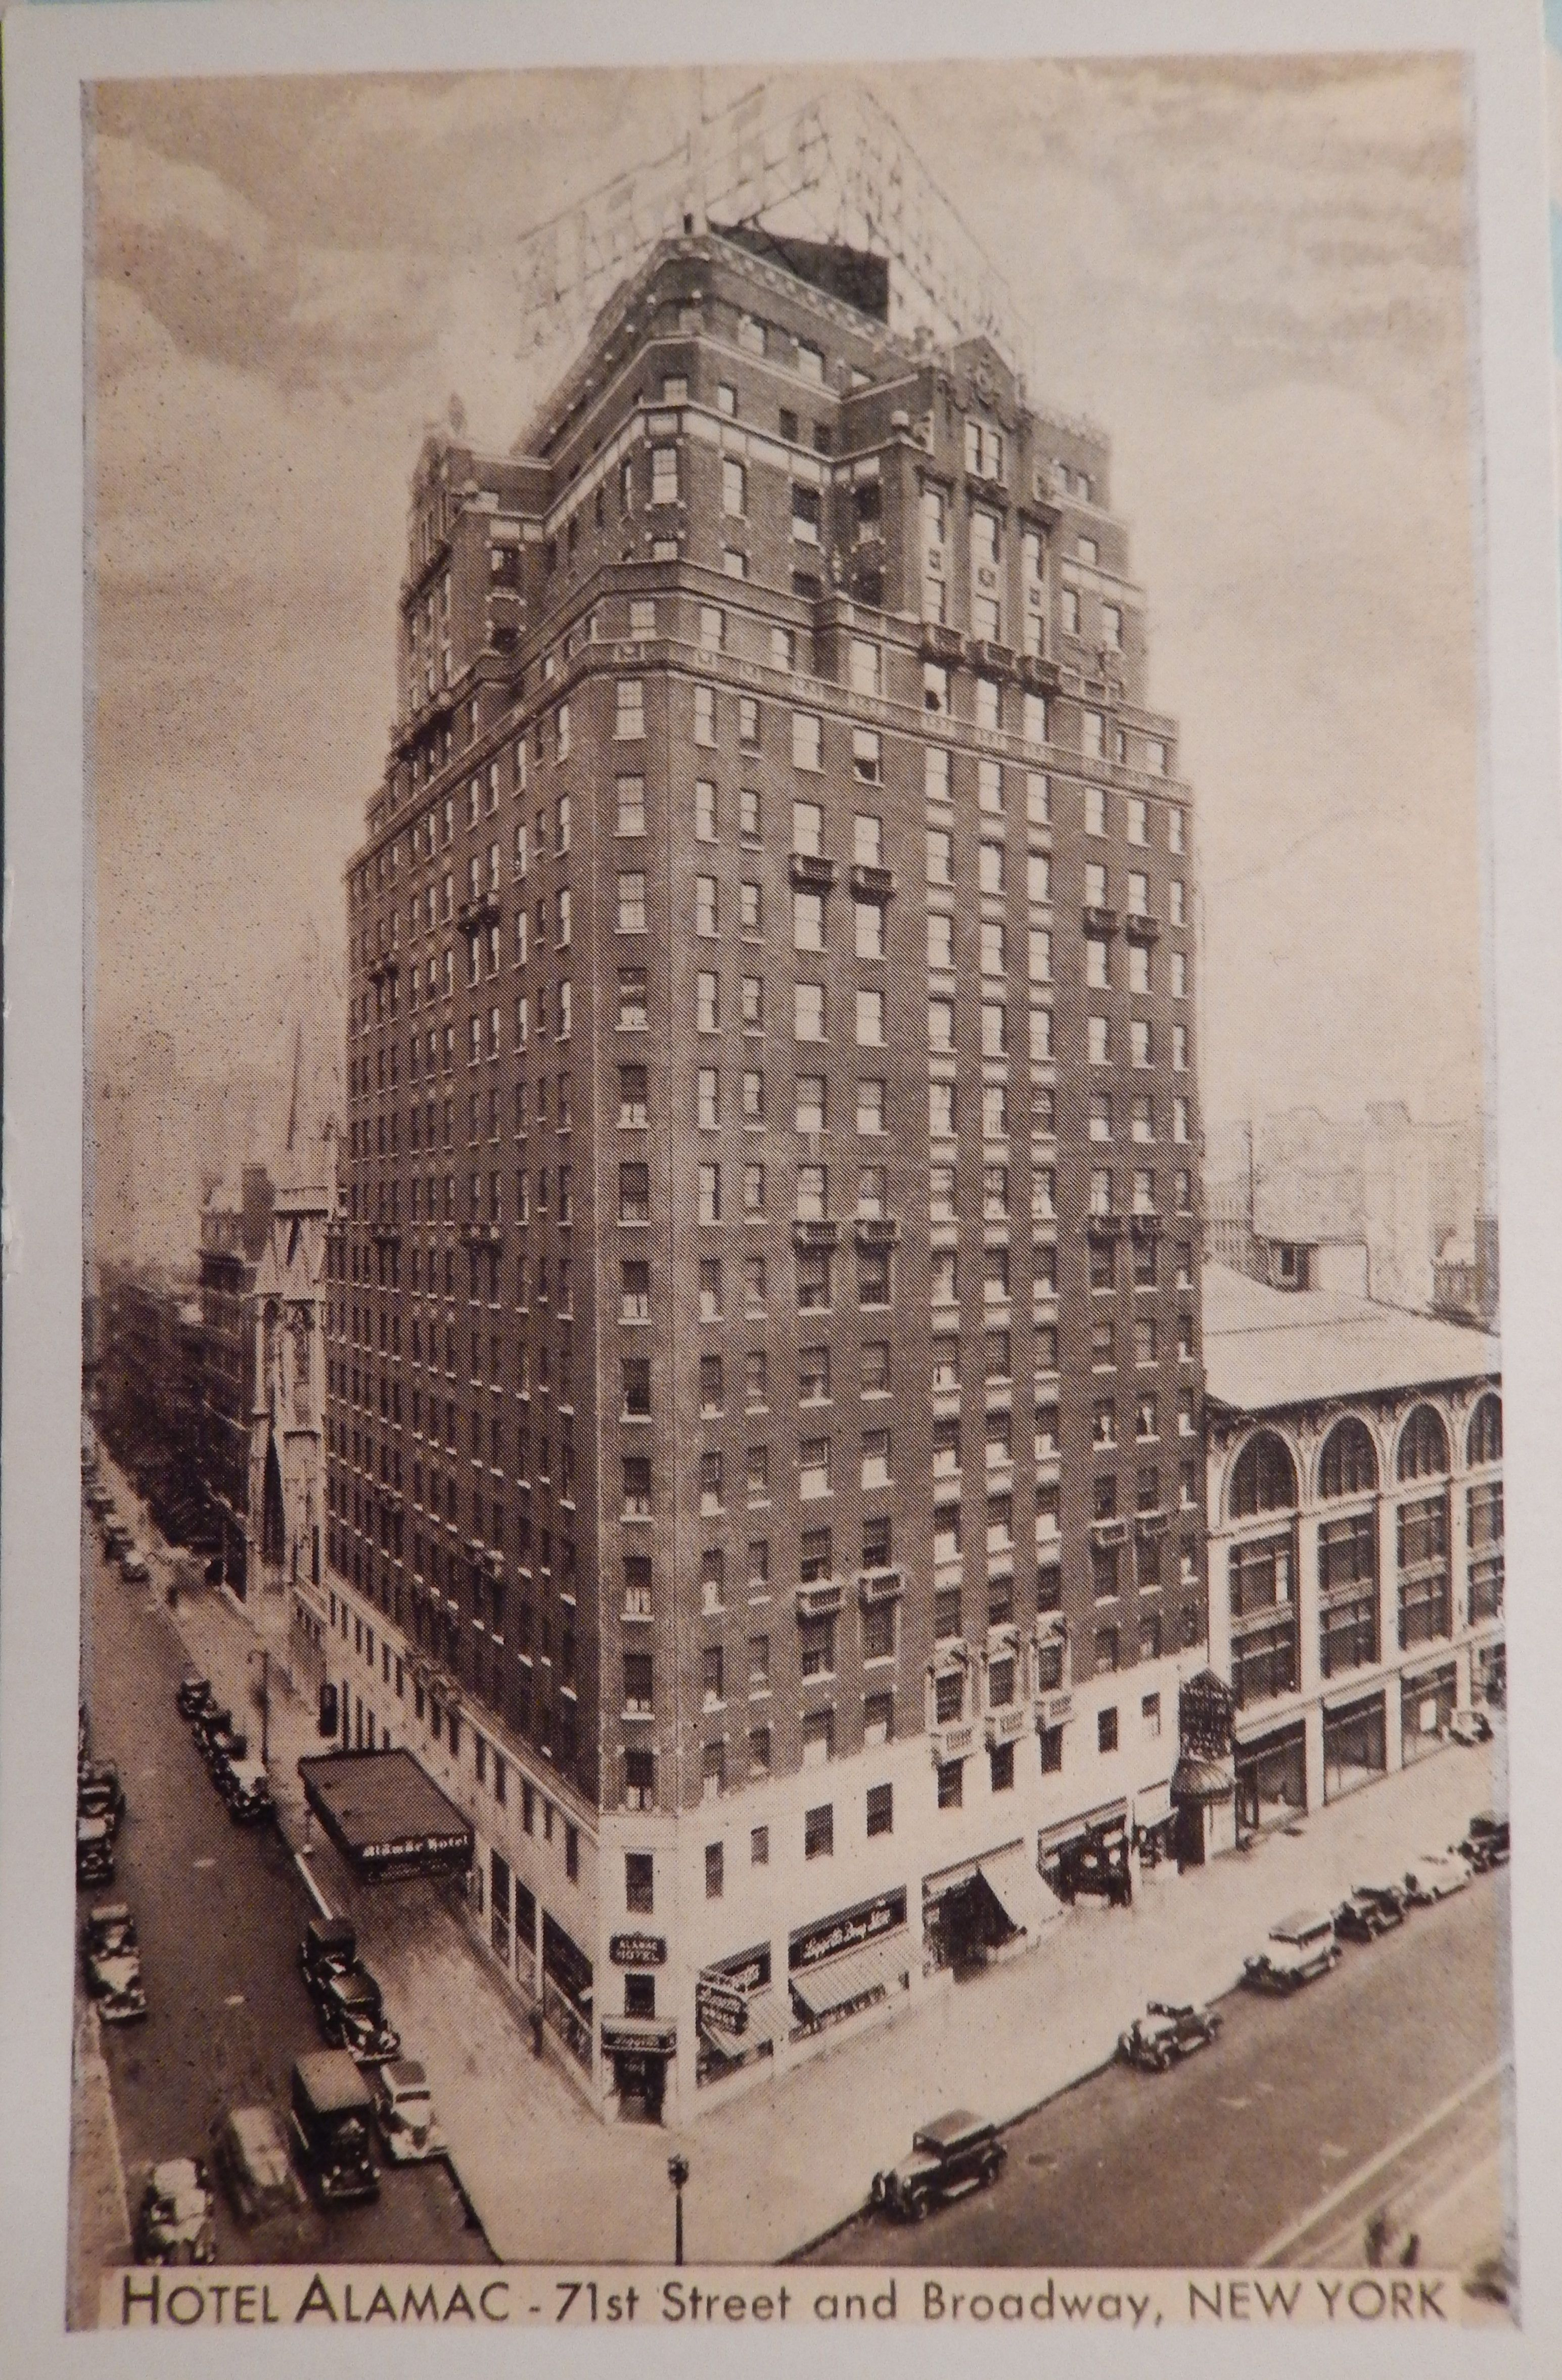 Hotel Alamac 71st St And Broadway New York City Leaning Tower Of Pisa City New York City